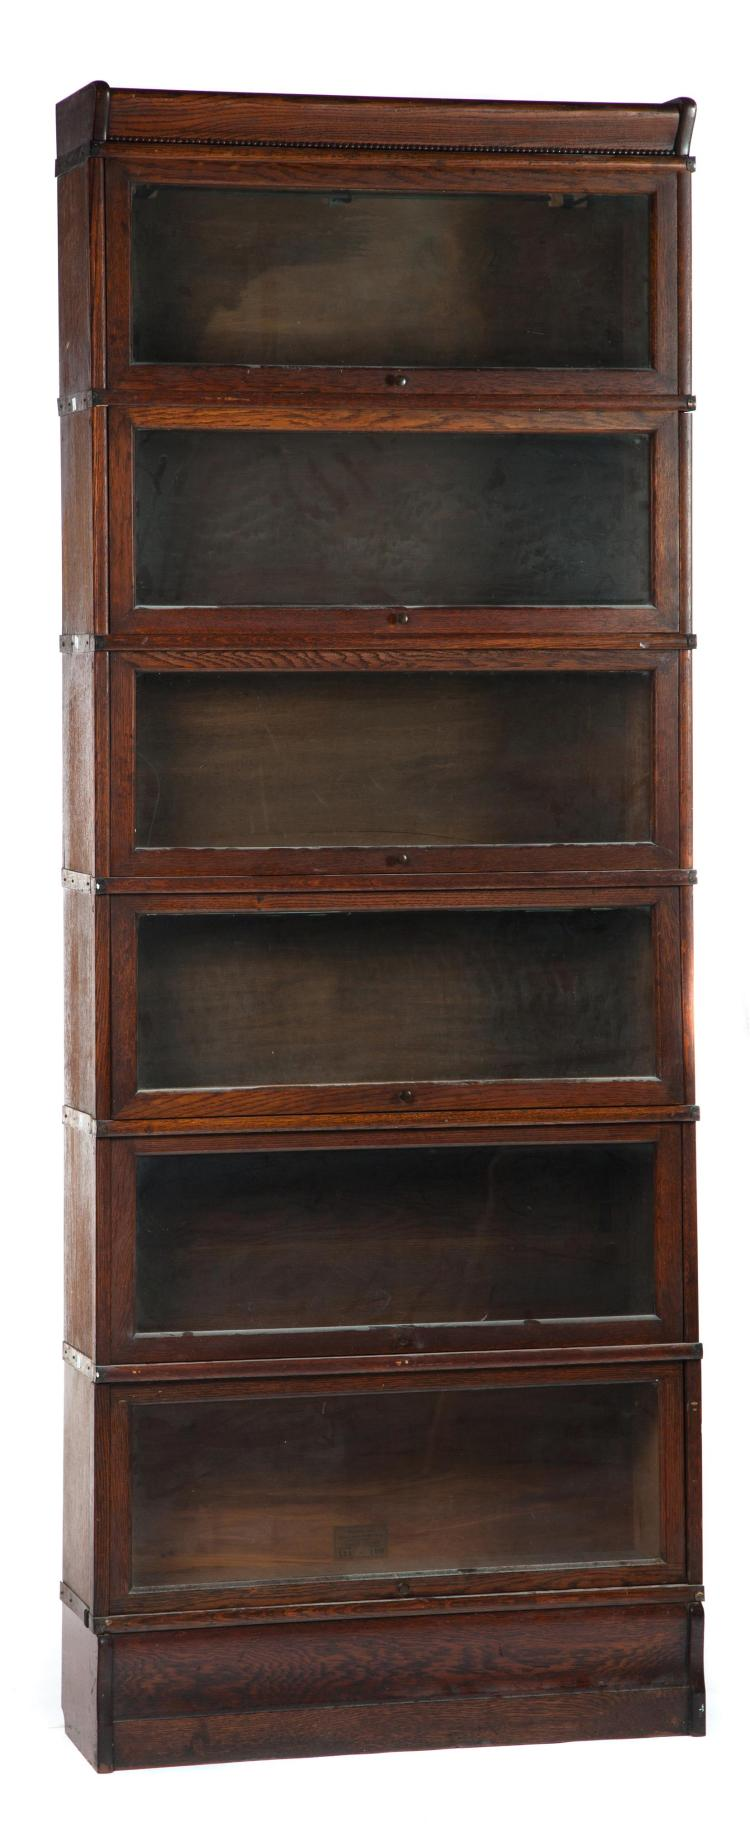 SIX-SECTION STACKING BOOKCASE.